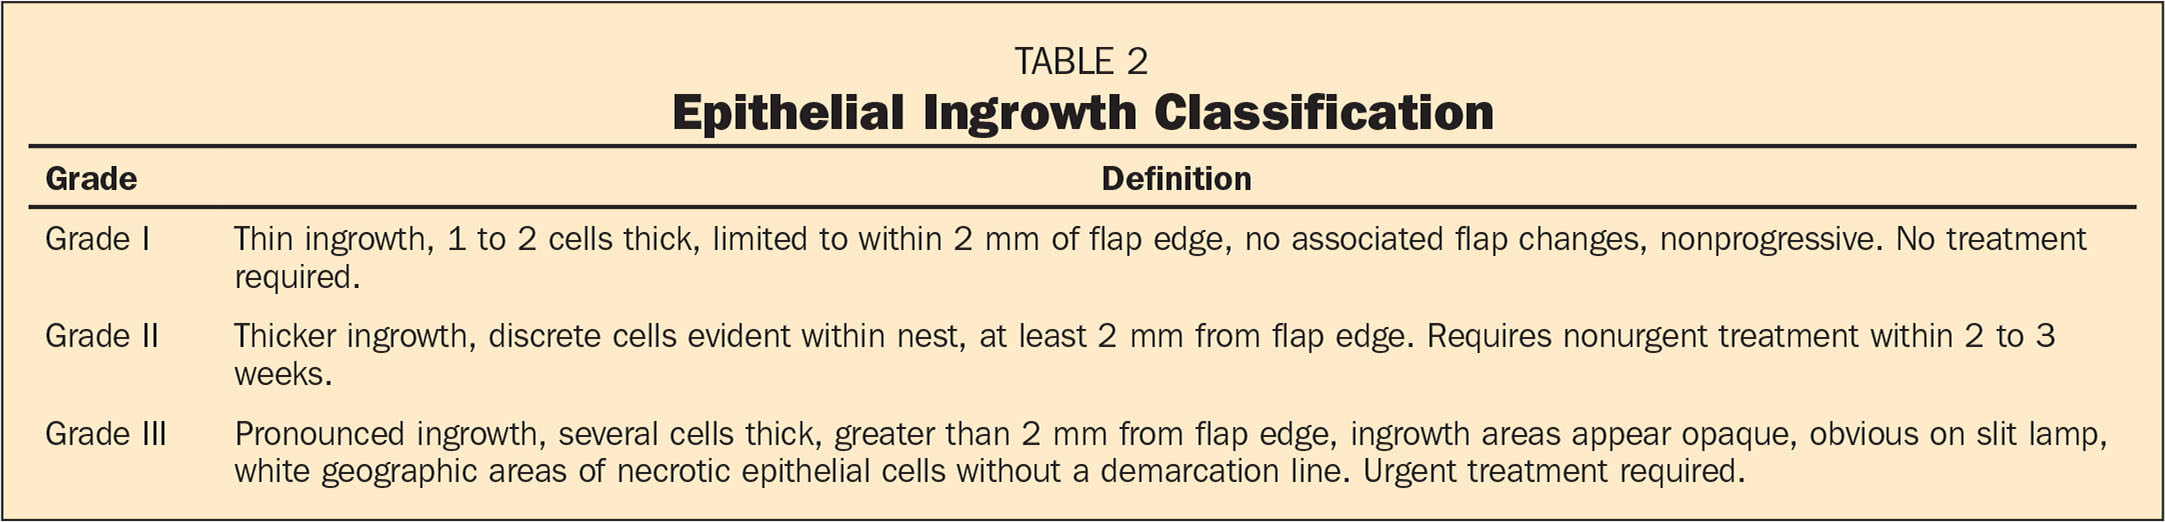 Epithelial Ingrowth Classification